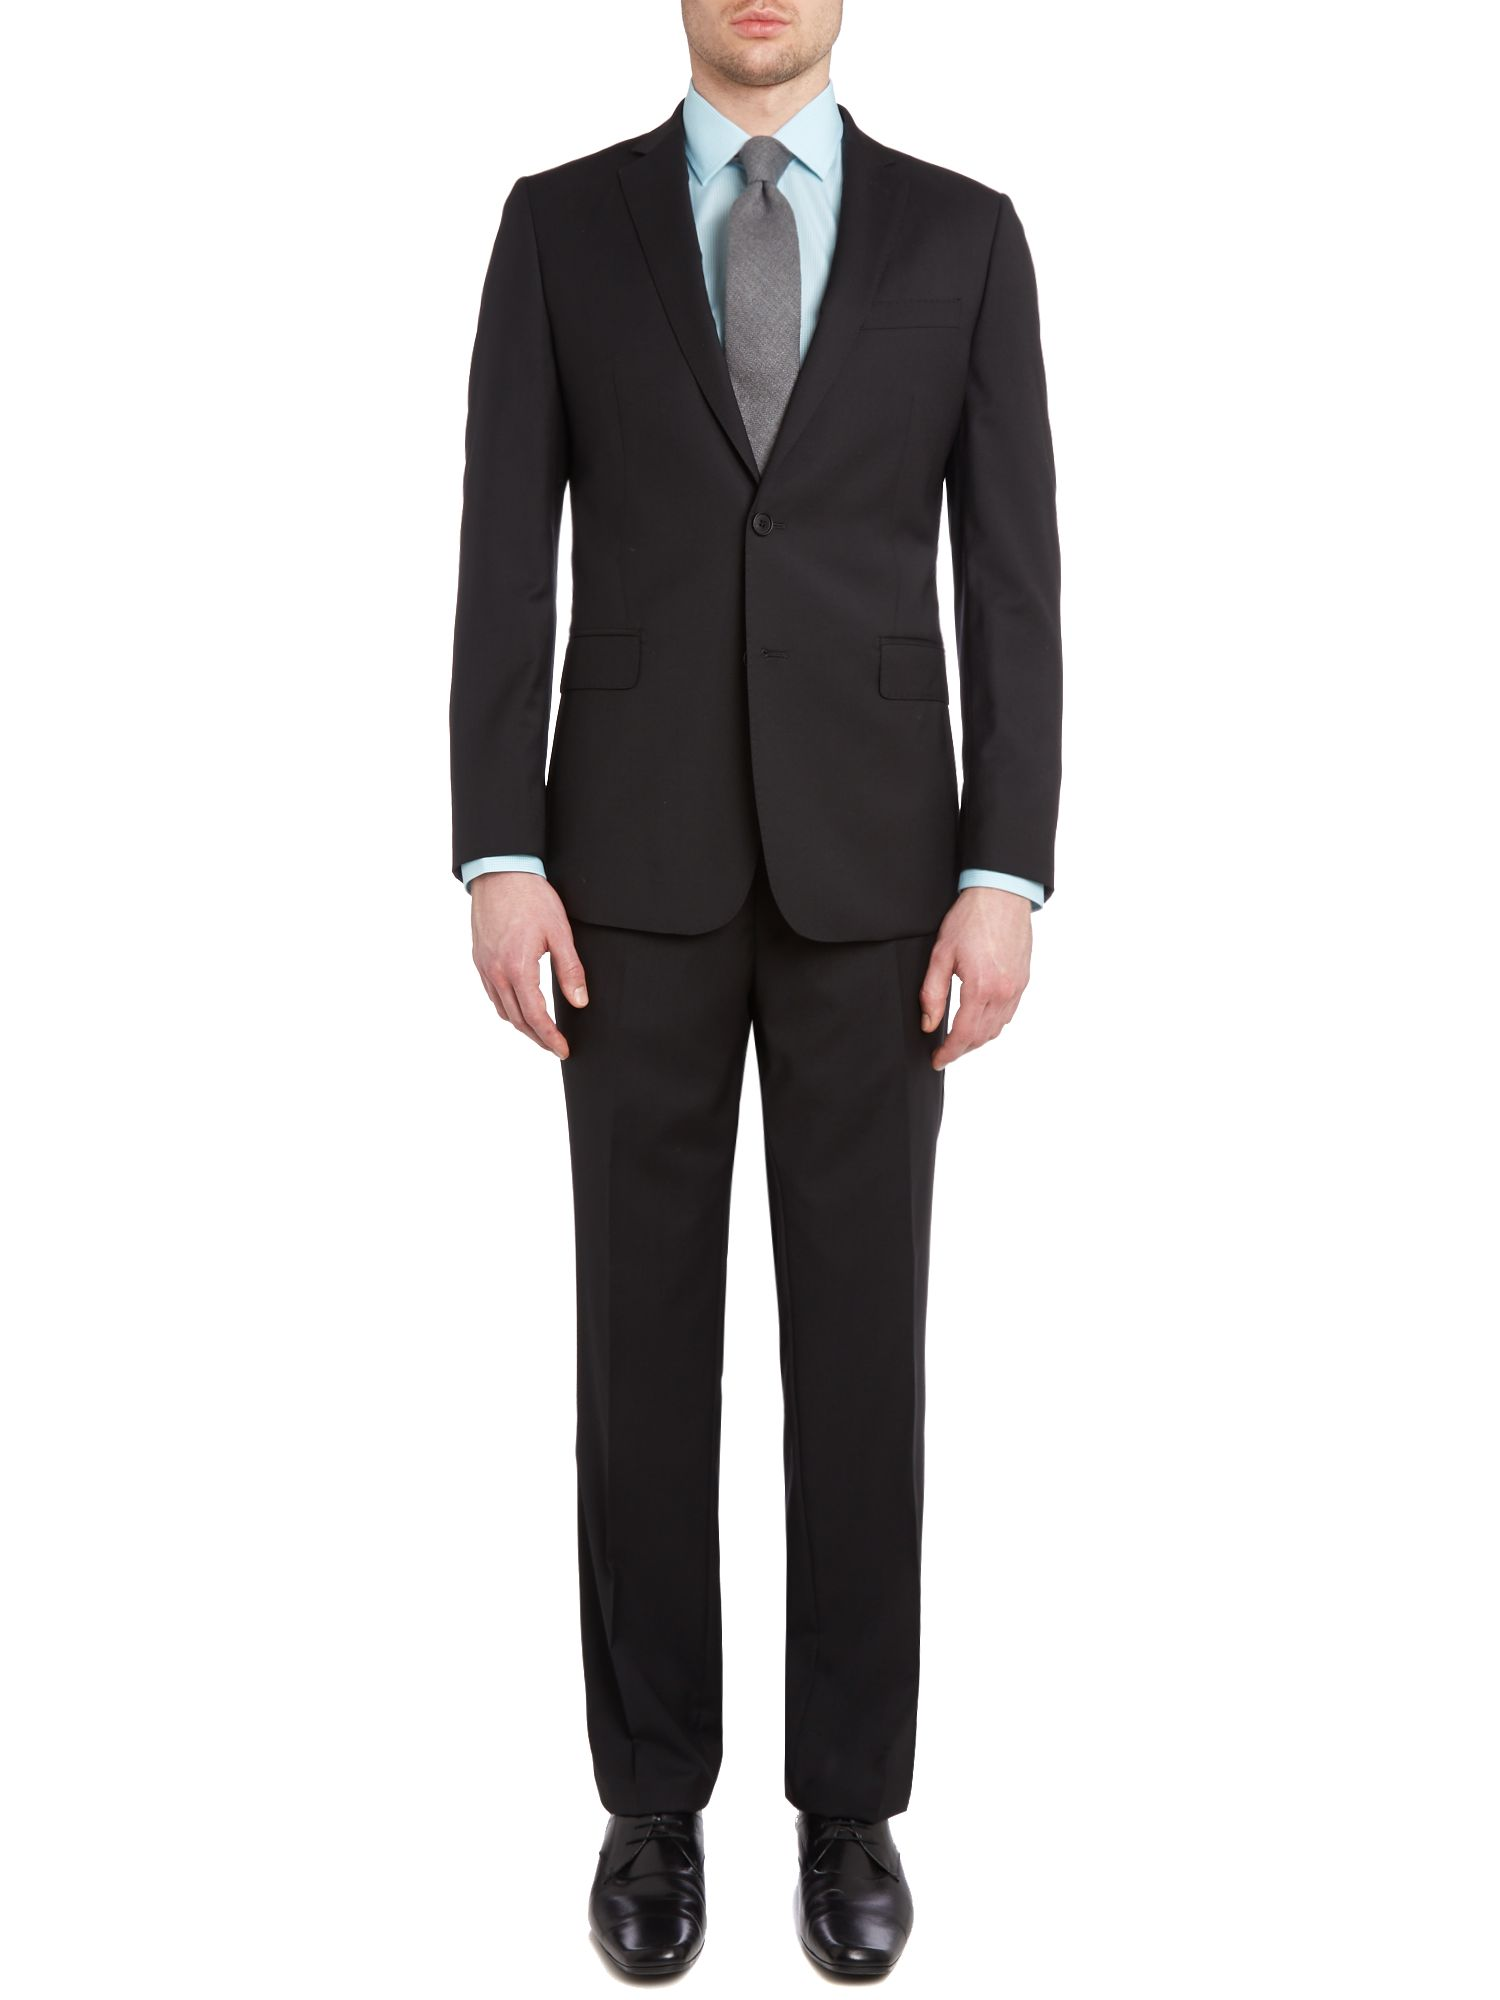 Contemporary plain suit